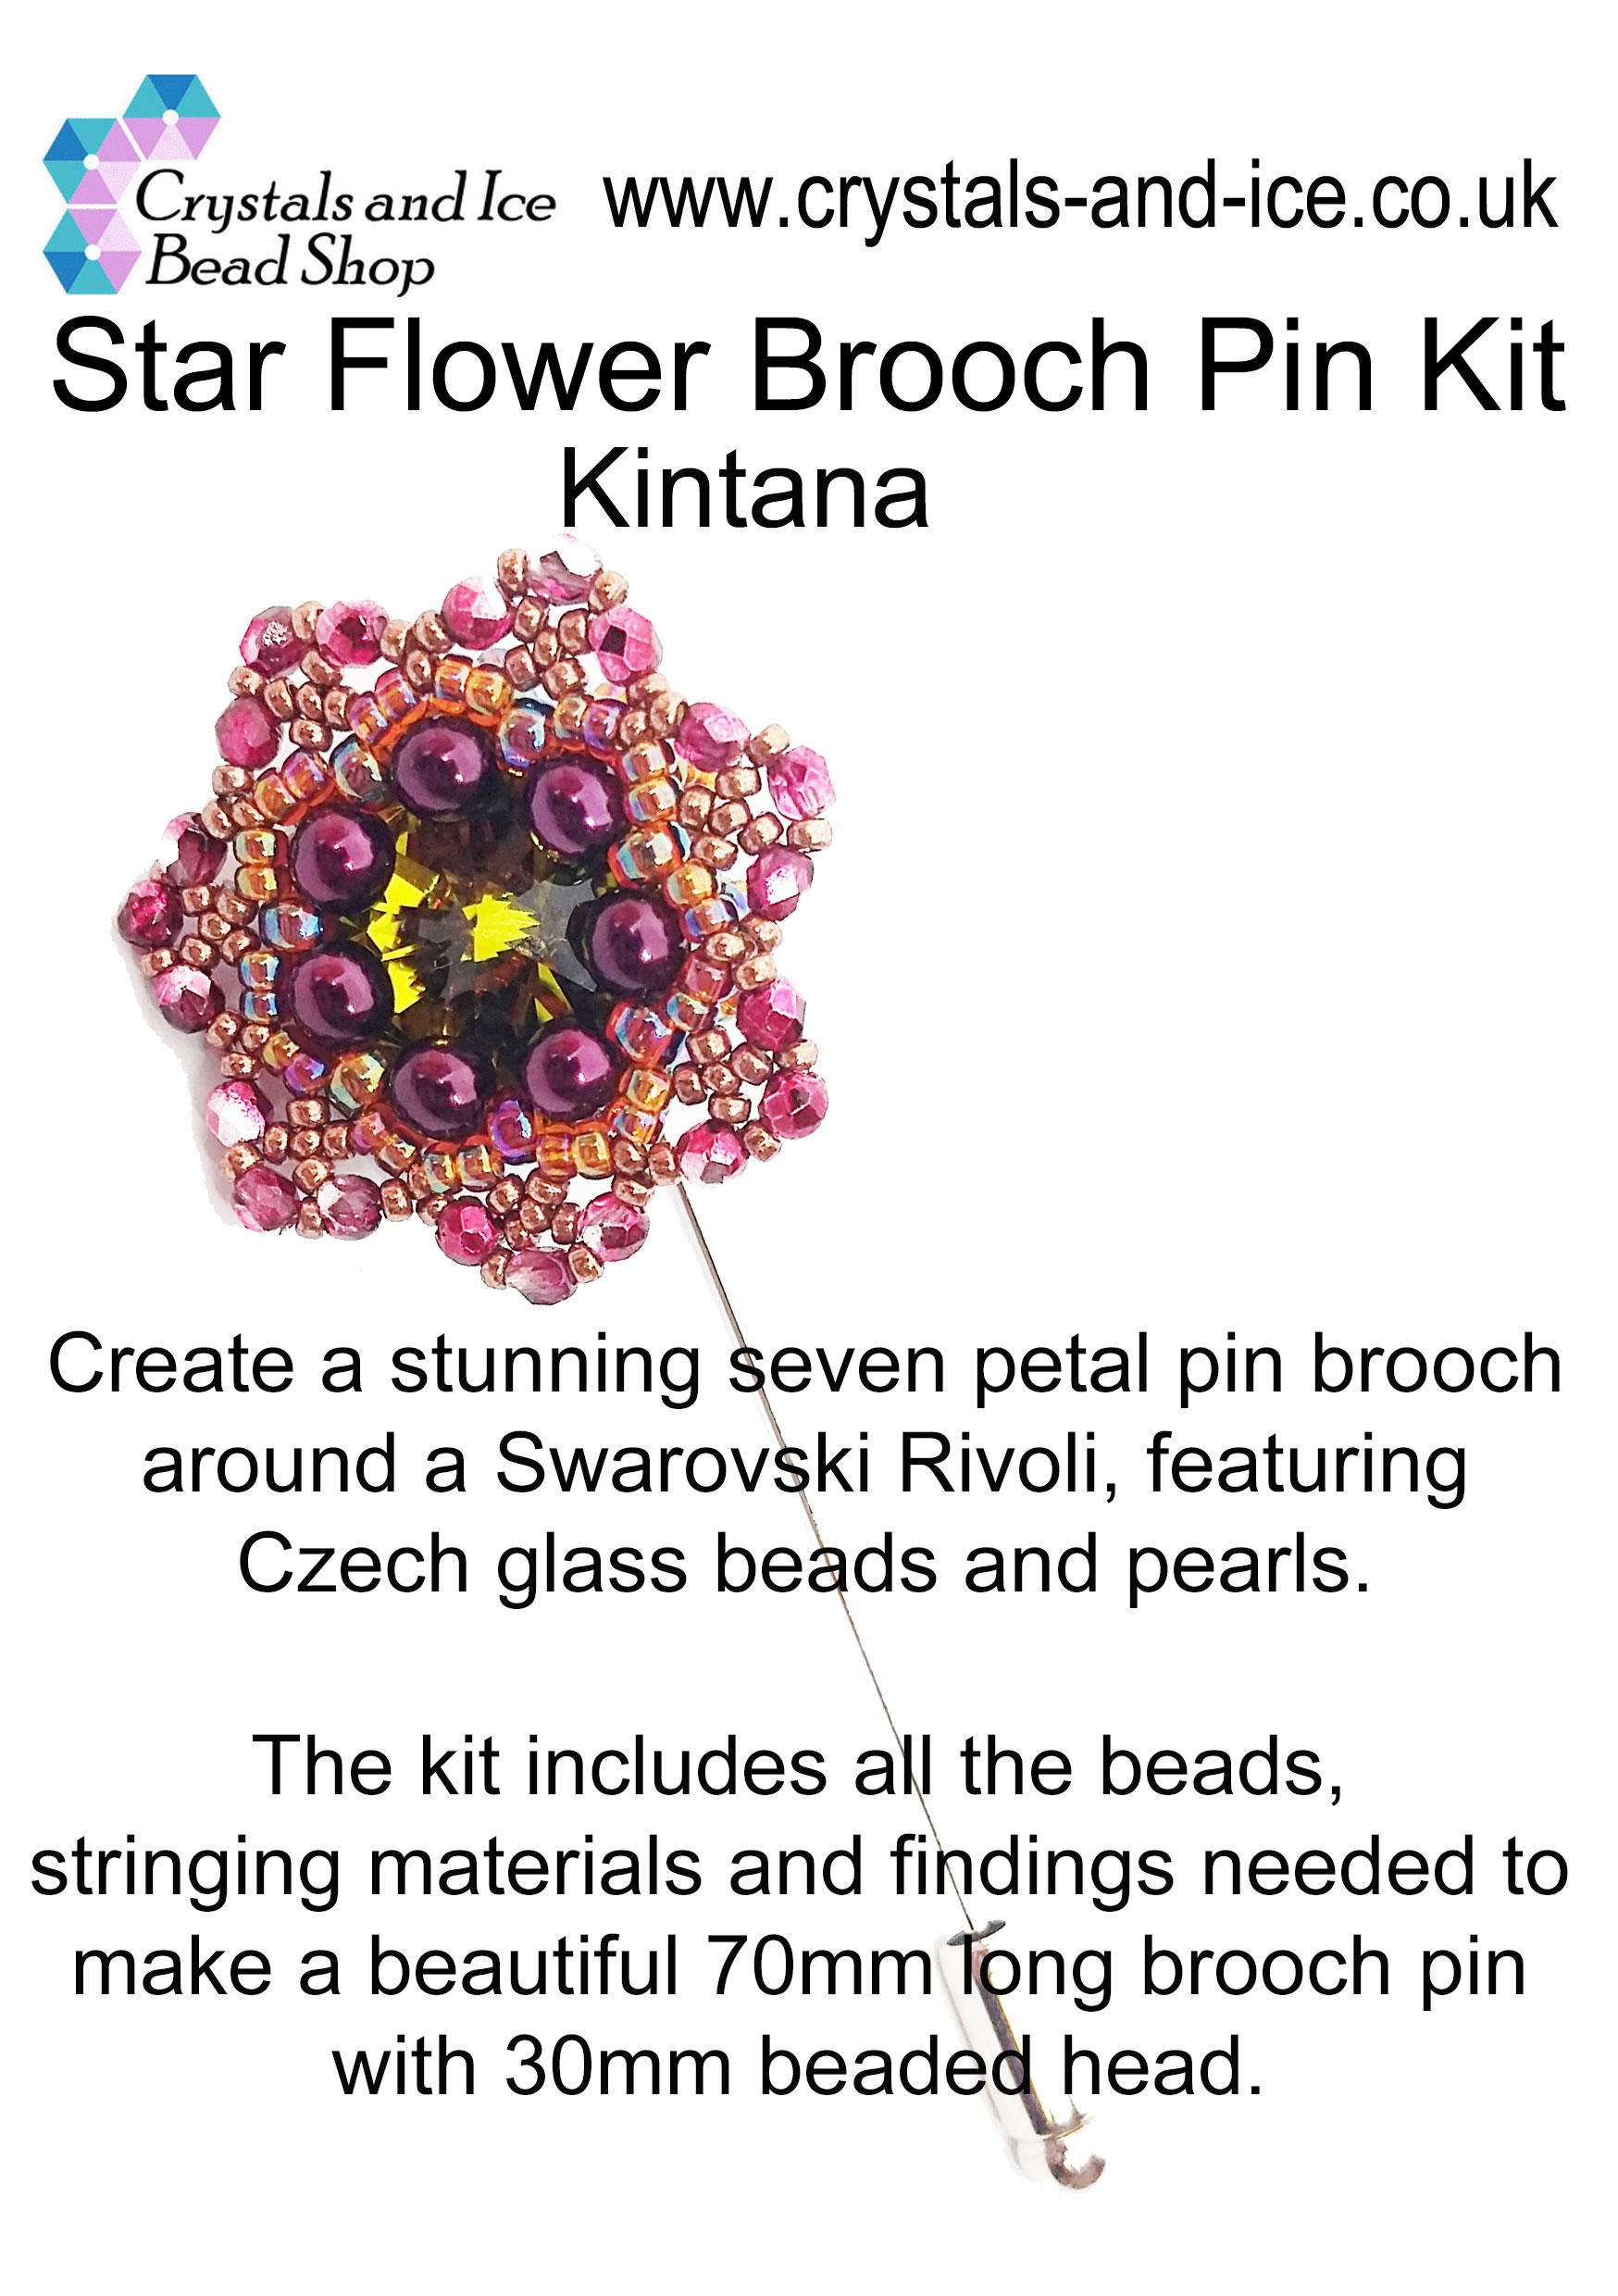 Star Flower Brooch Pin Kit - Kintana